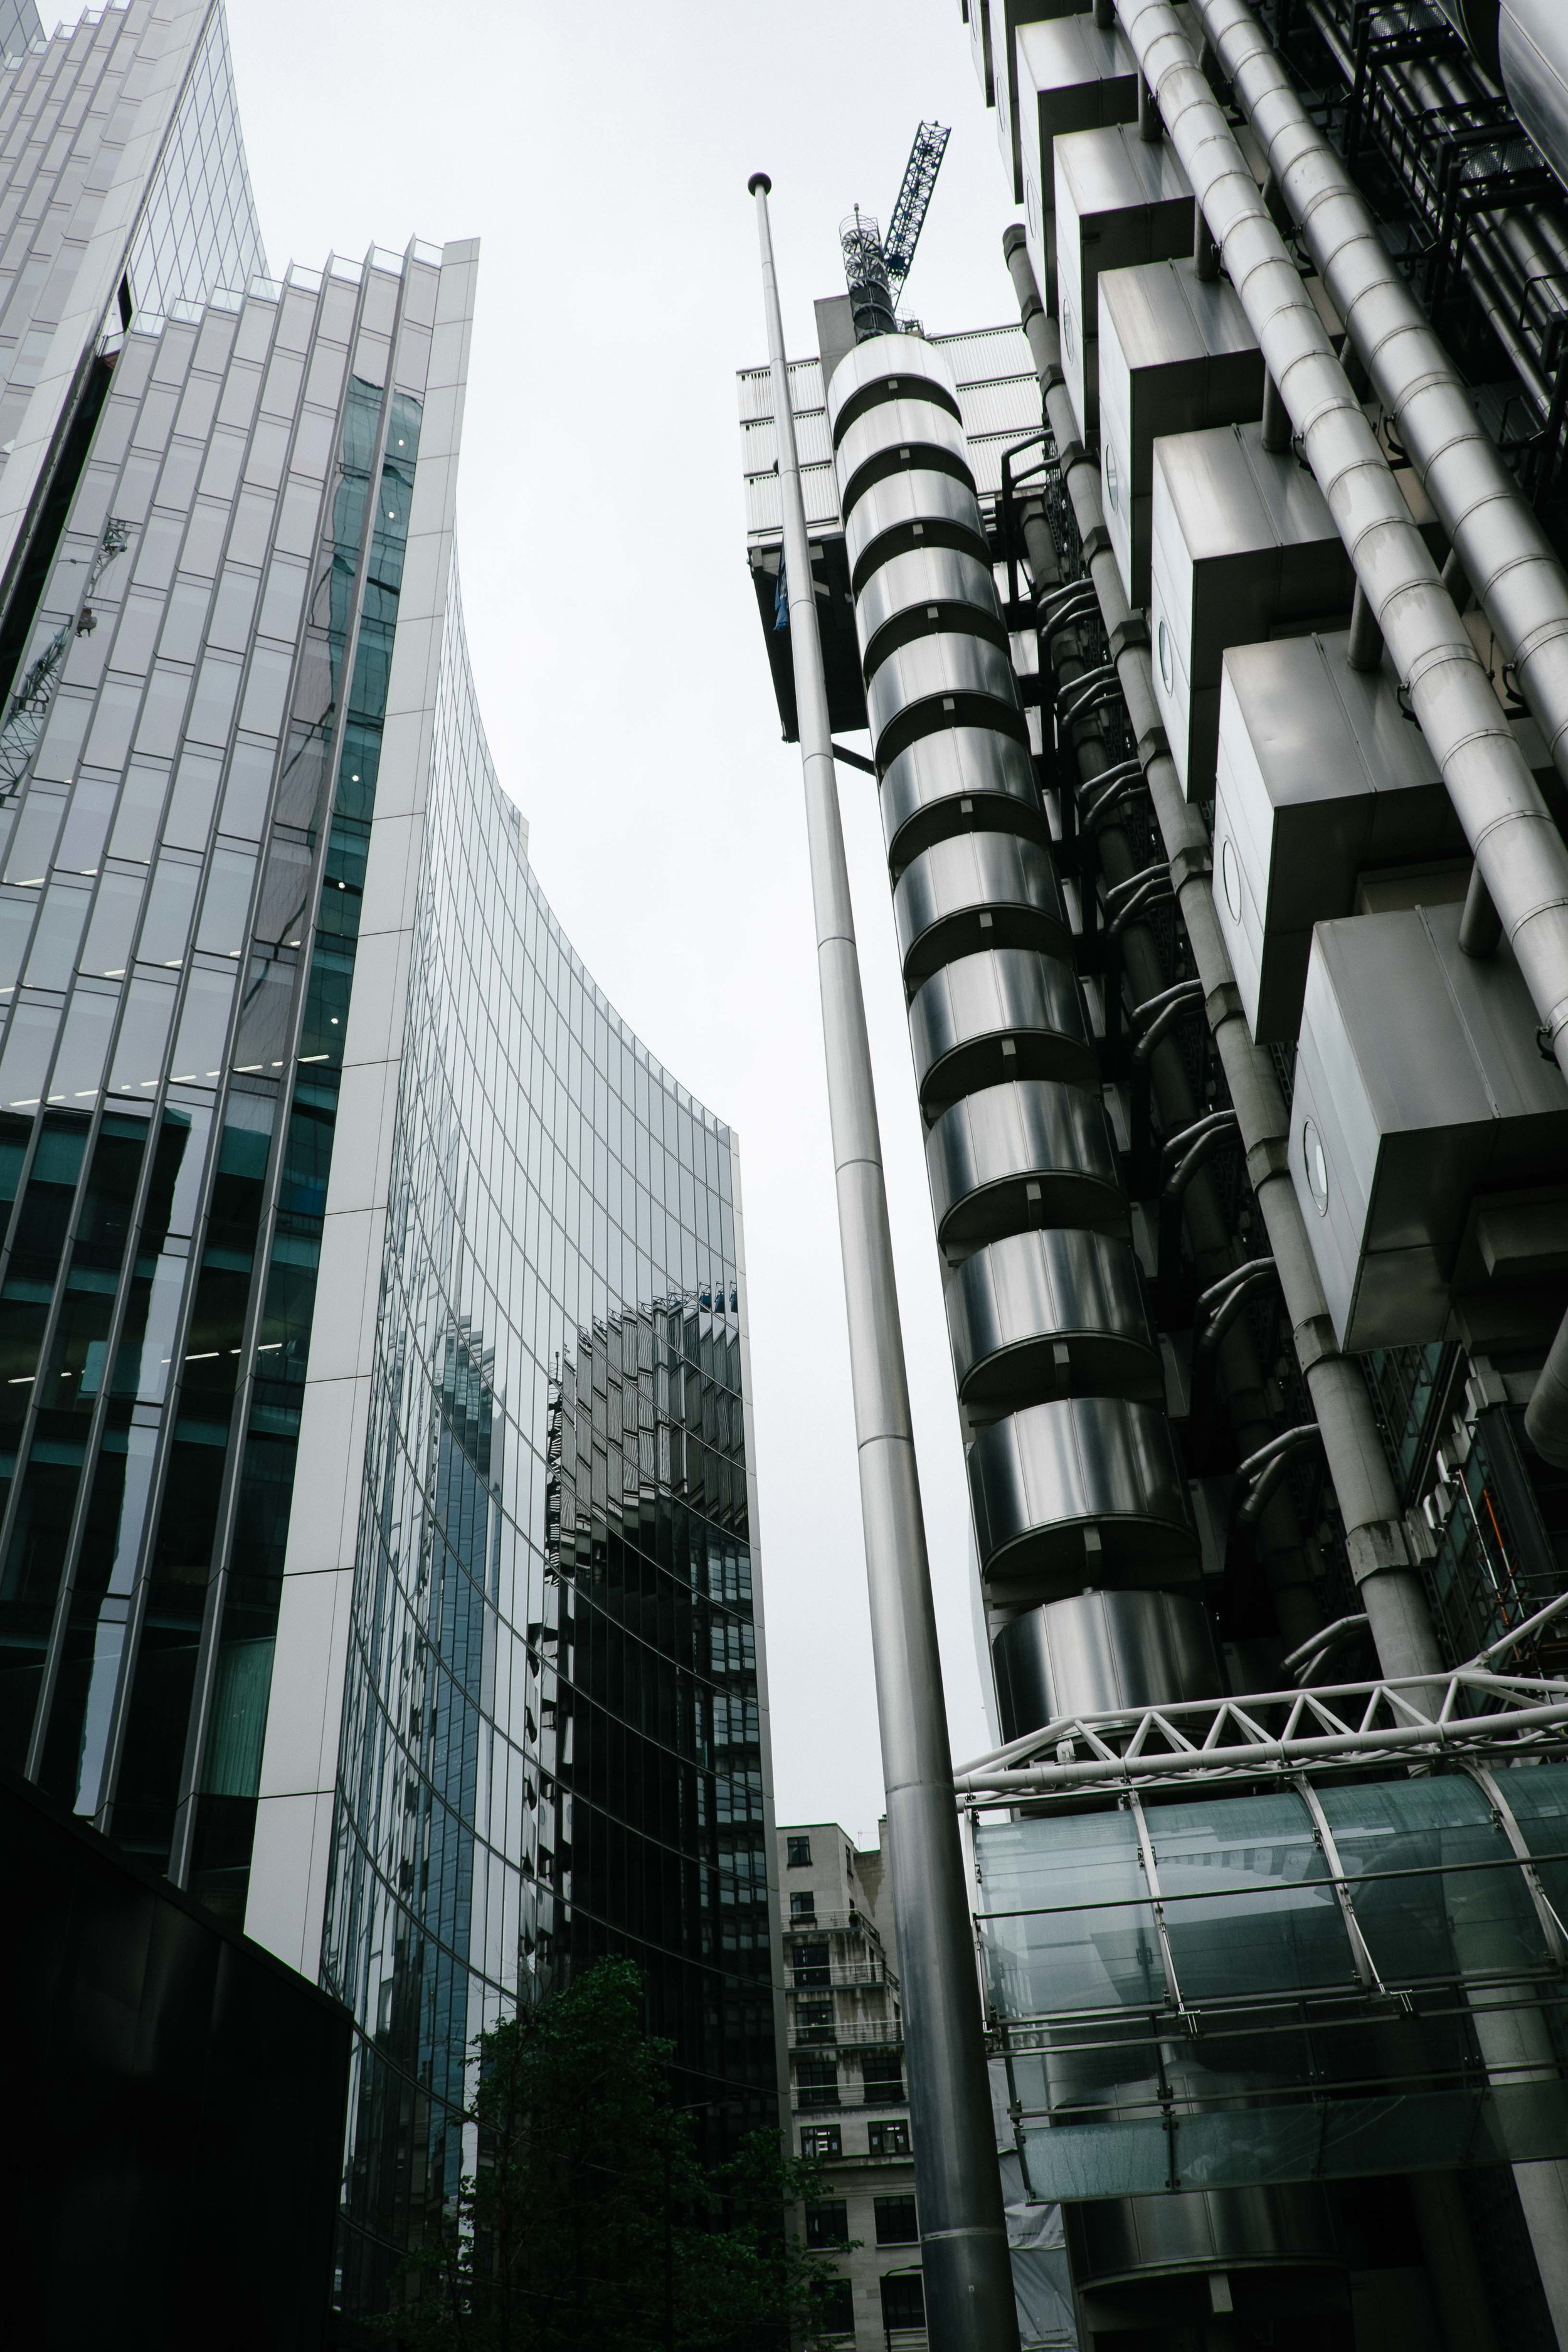 Willis Tower and Lloyd's of London